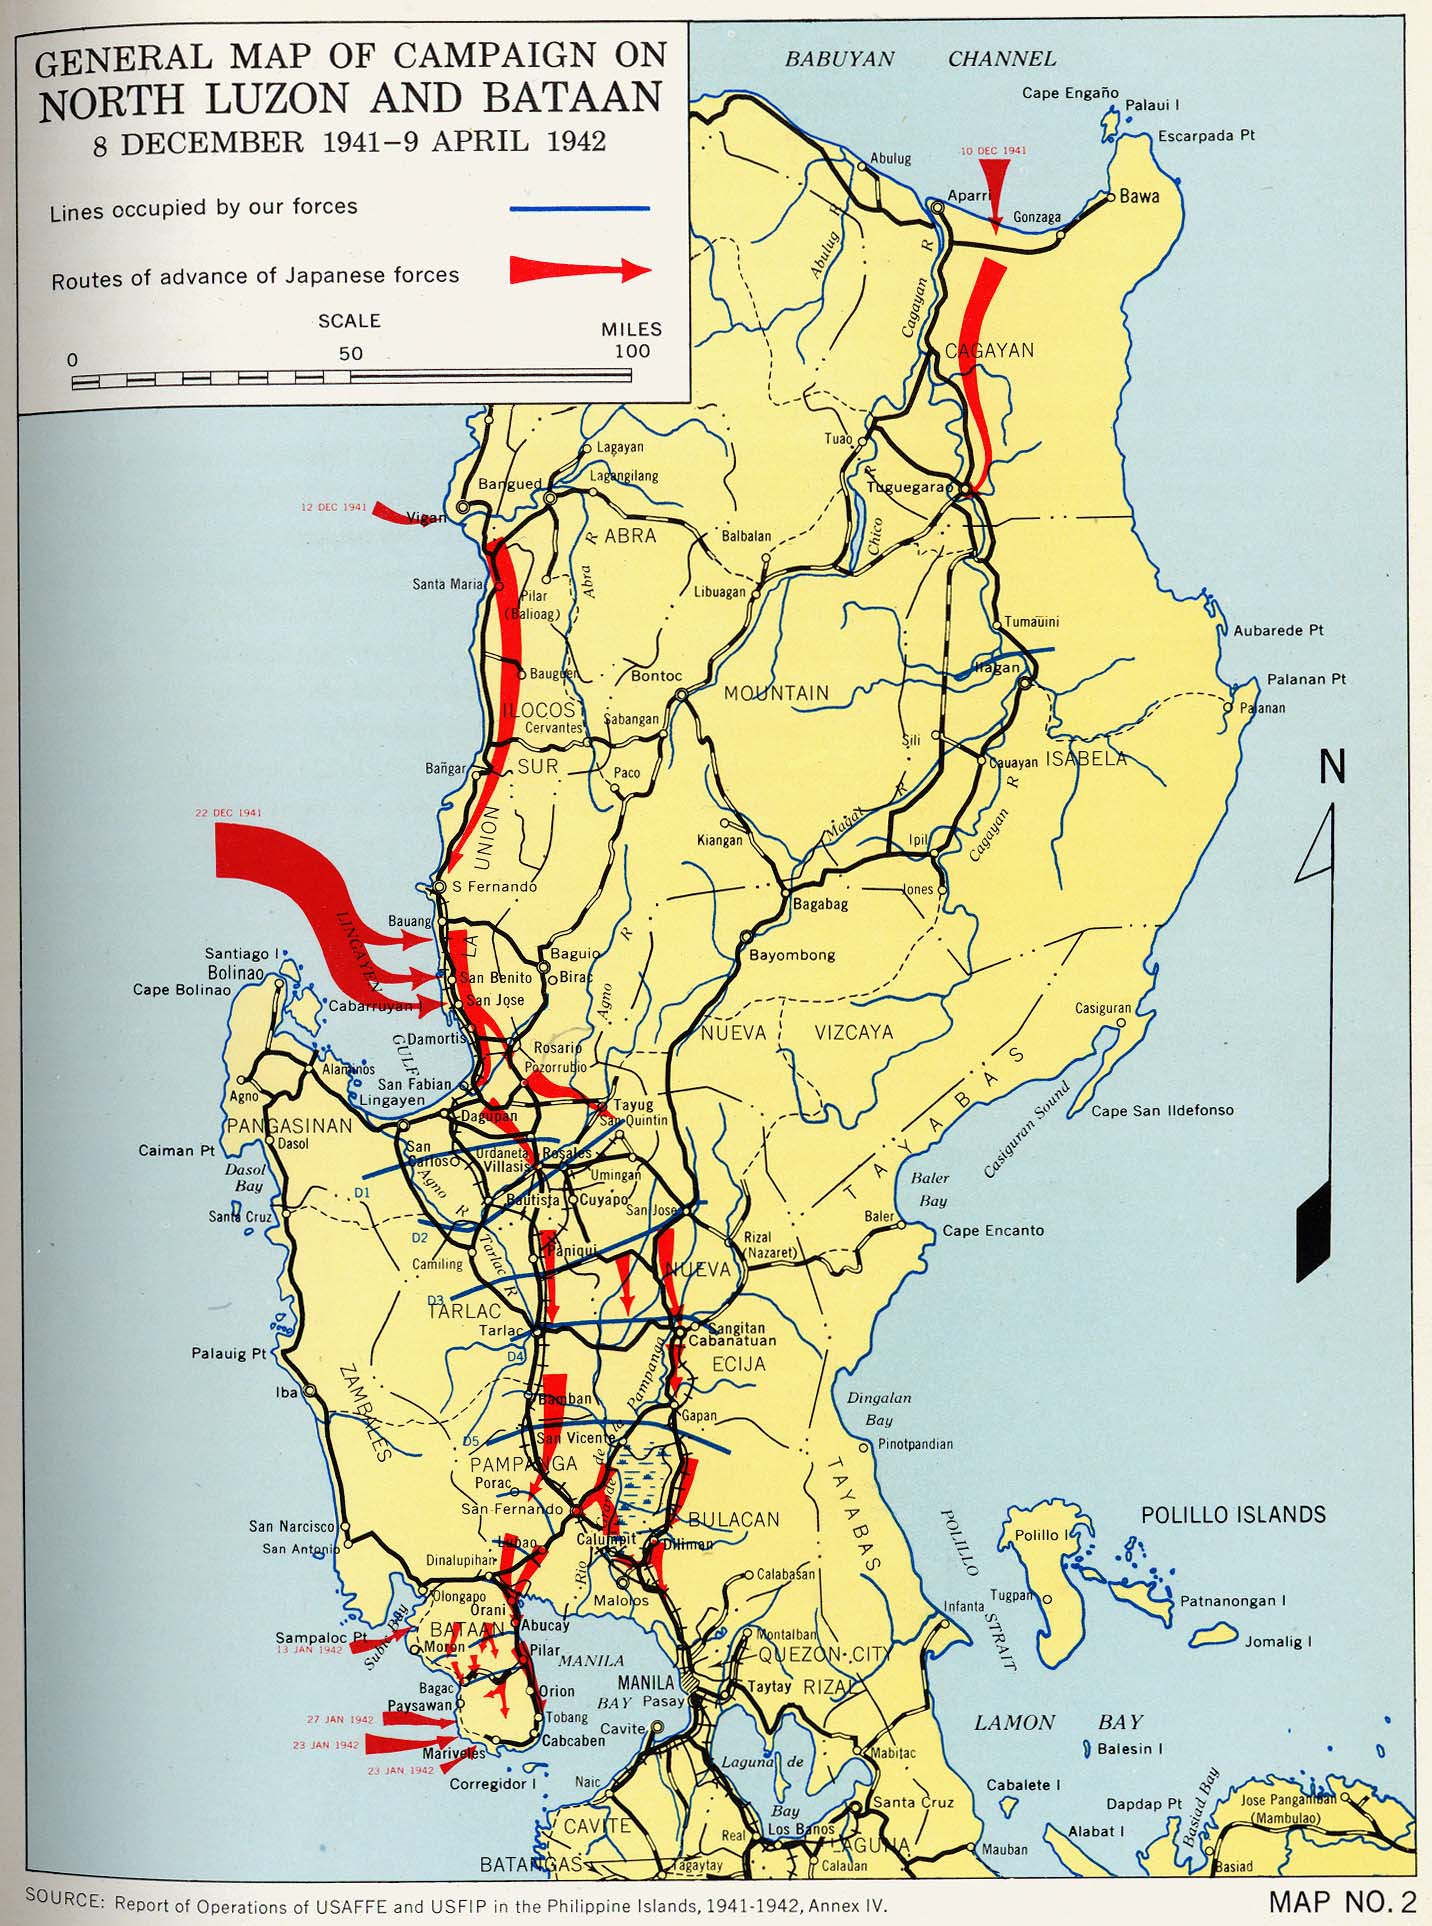 Engineers of the southwest pacific 1941 1945 vol 1 perry general map of campaign on north luzon and bataan 8 december 1941 9 april 1942 publicscrutiny Choice Image